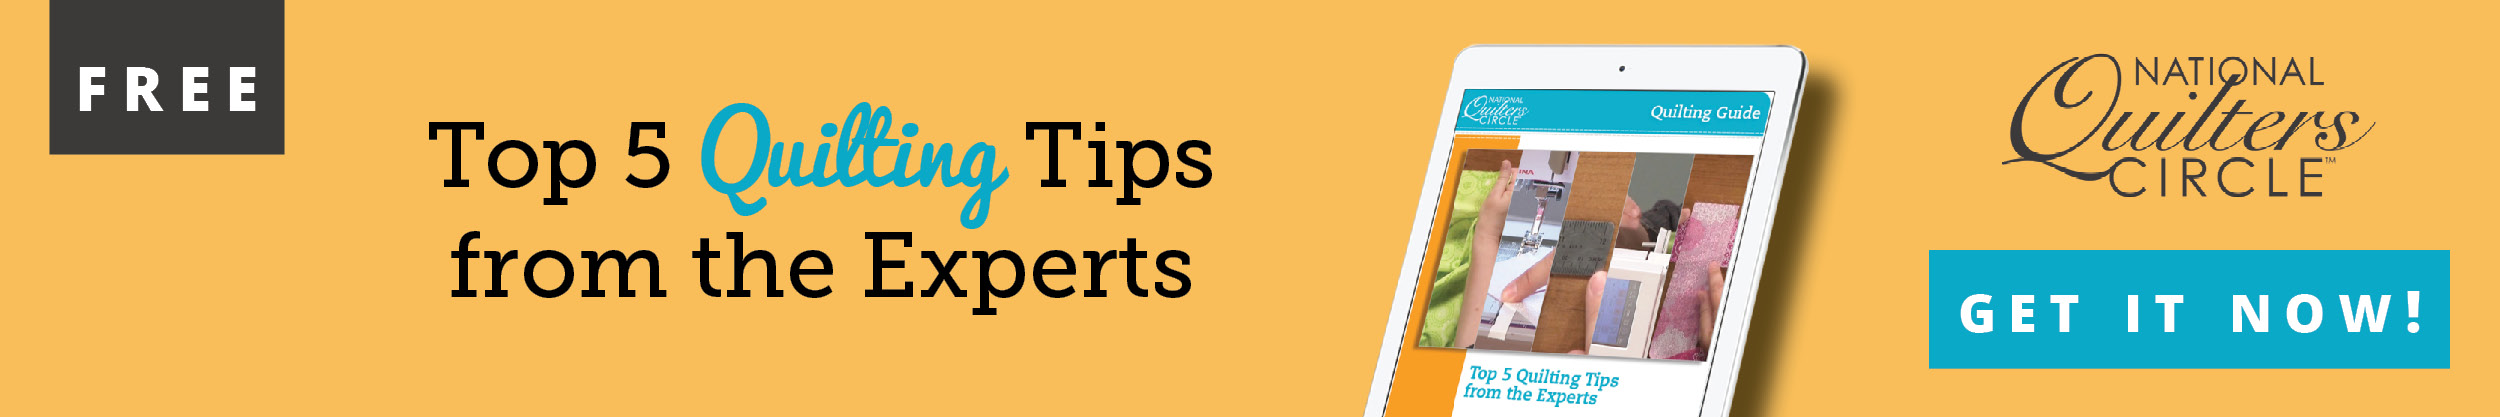 Top 5 Quilting Tips from the Experts_large